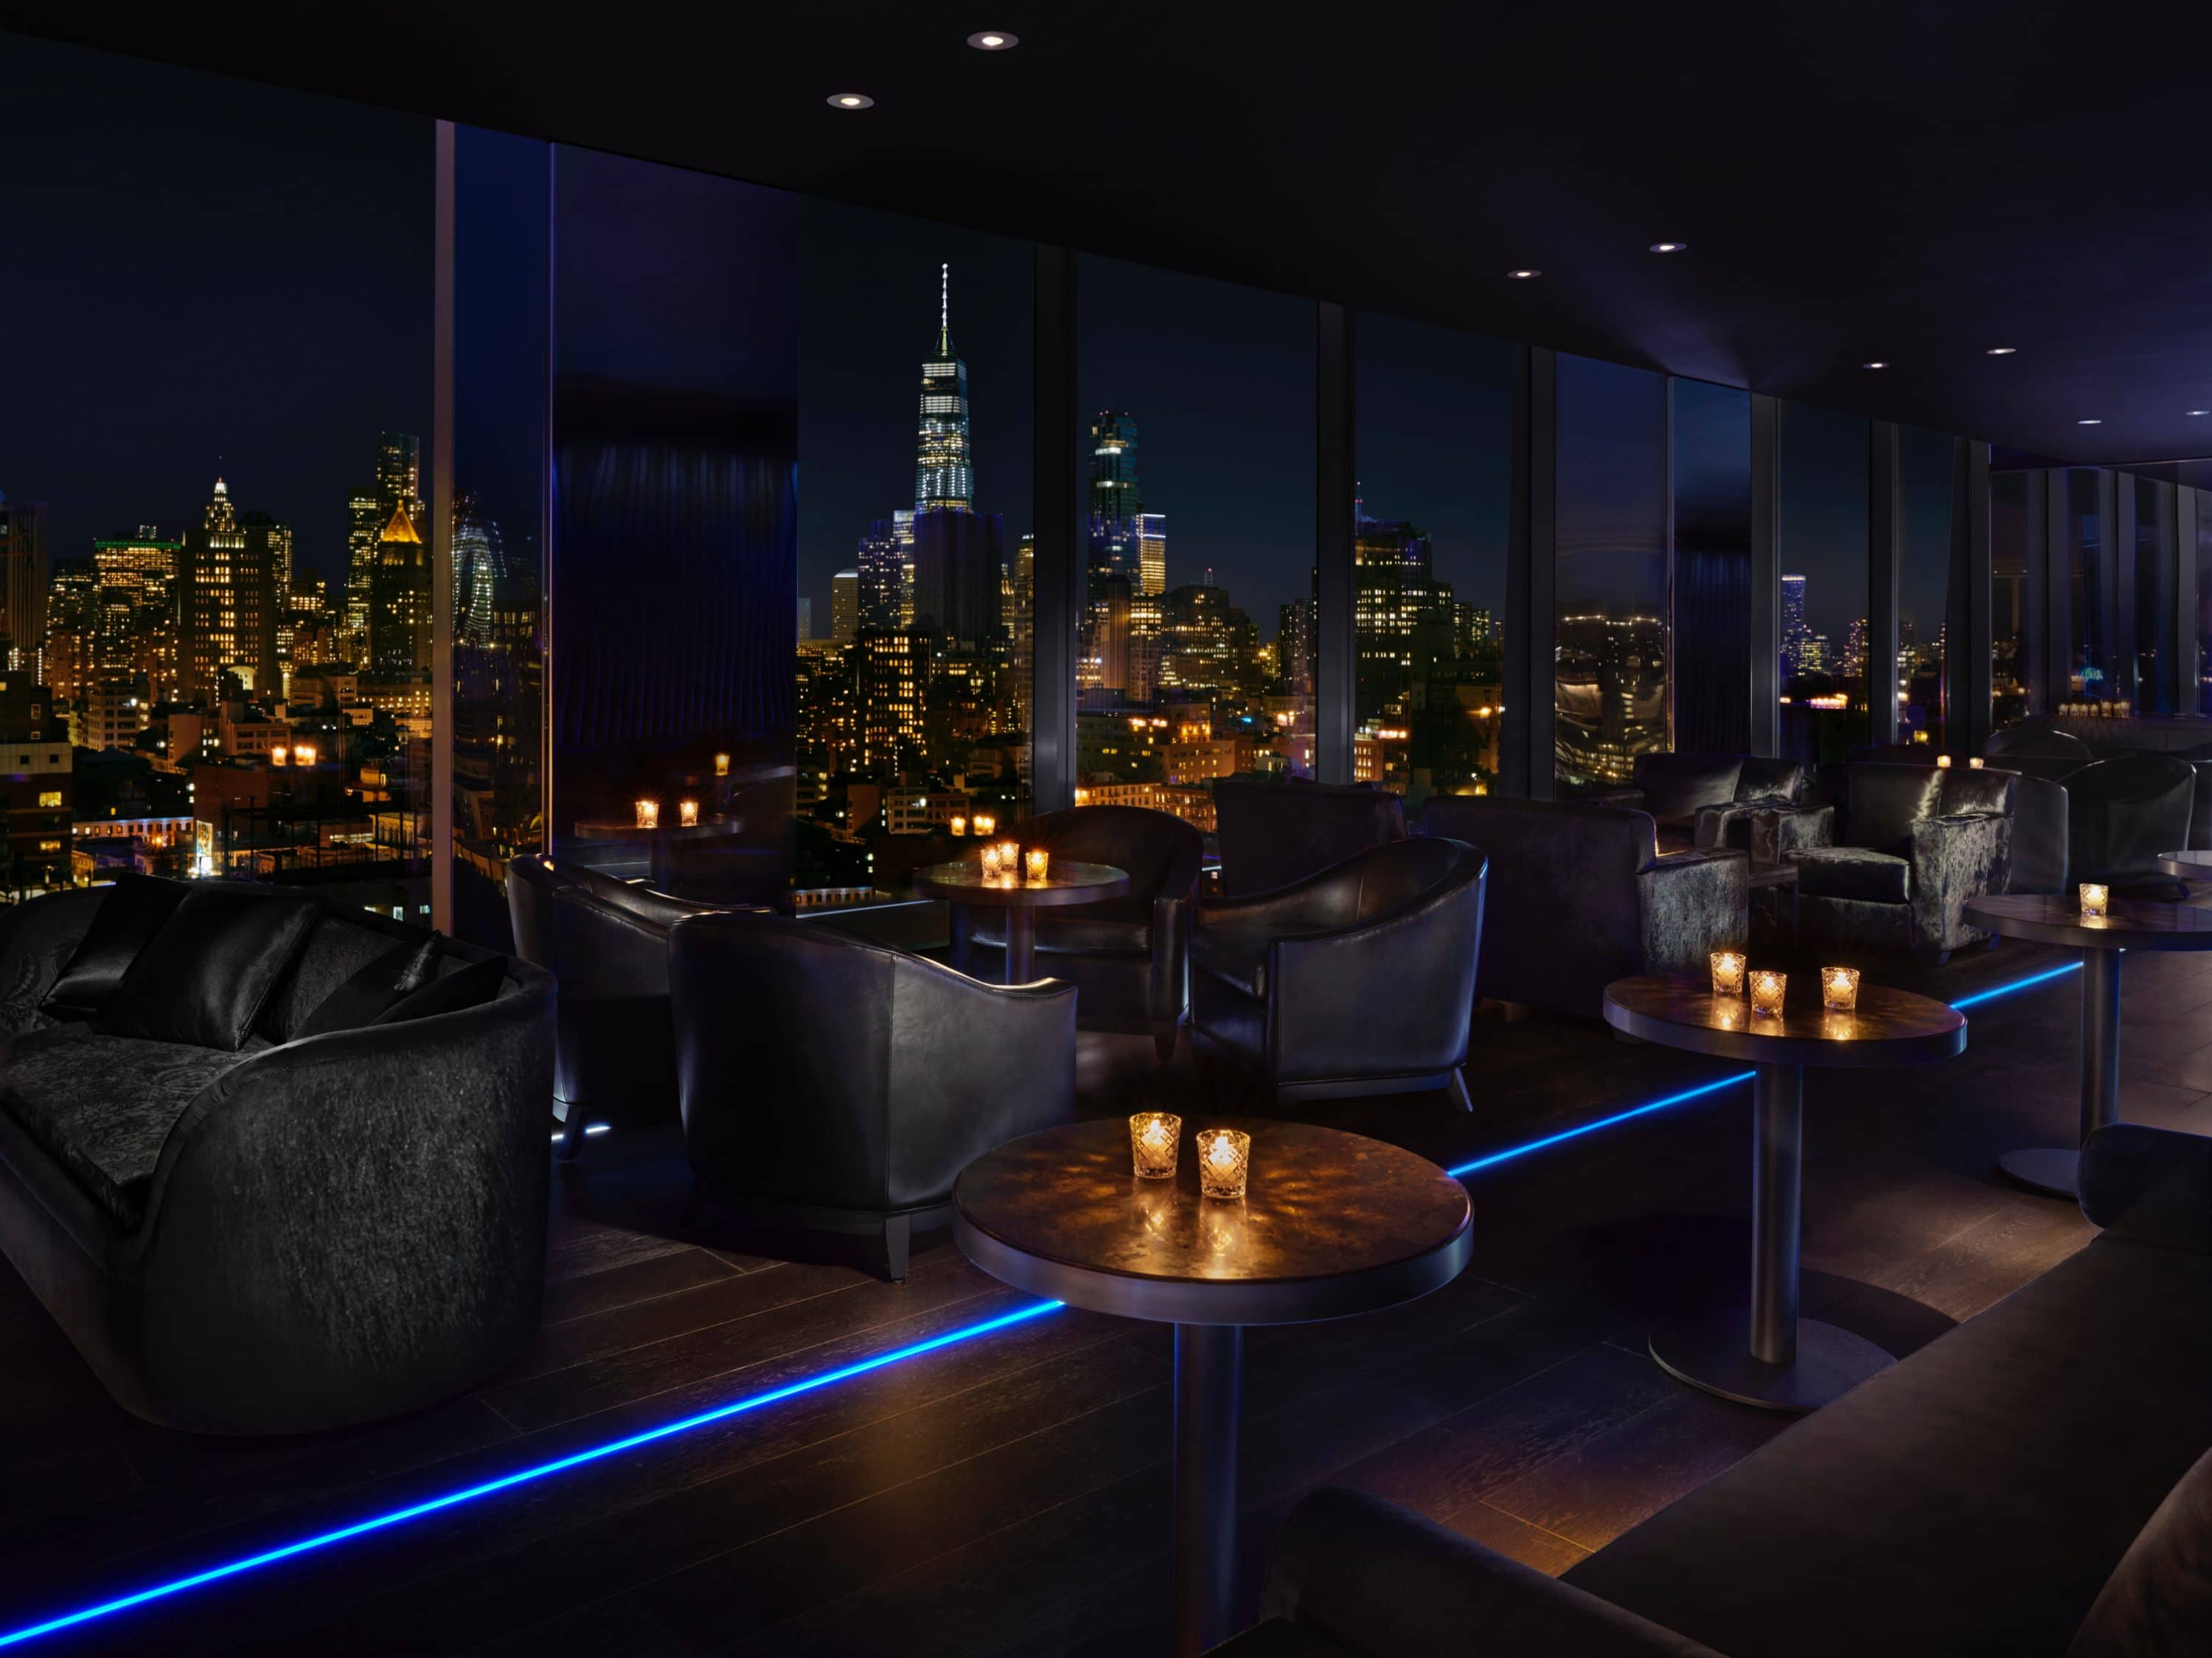 Where to drink in New York - Public